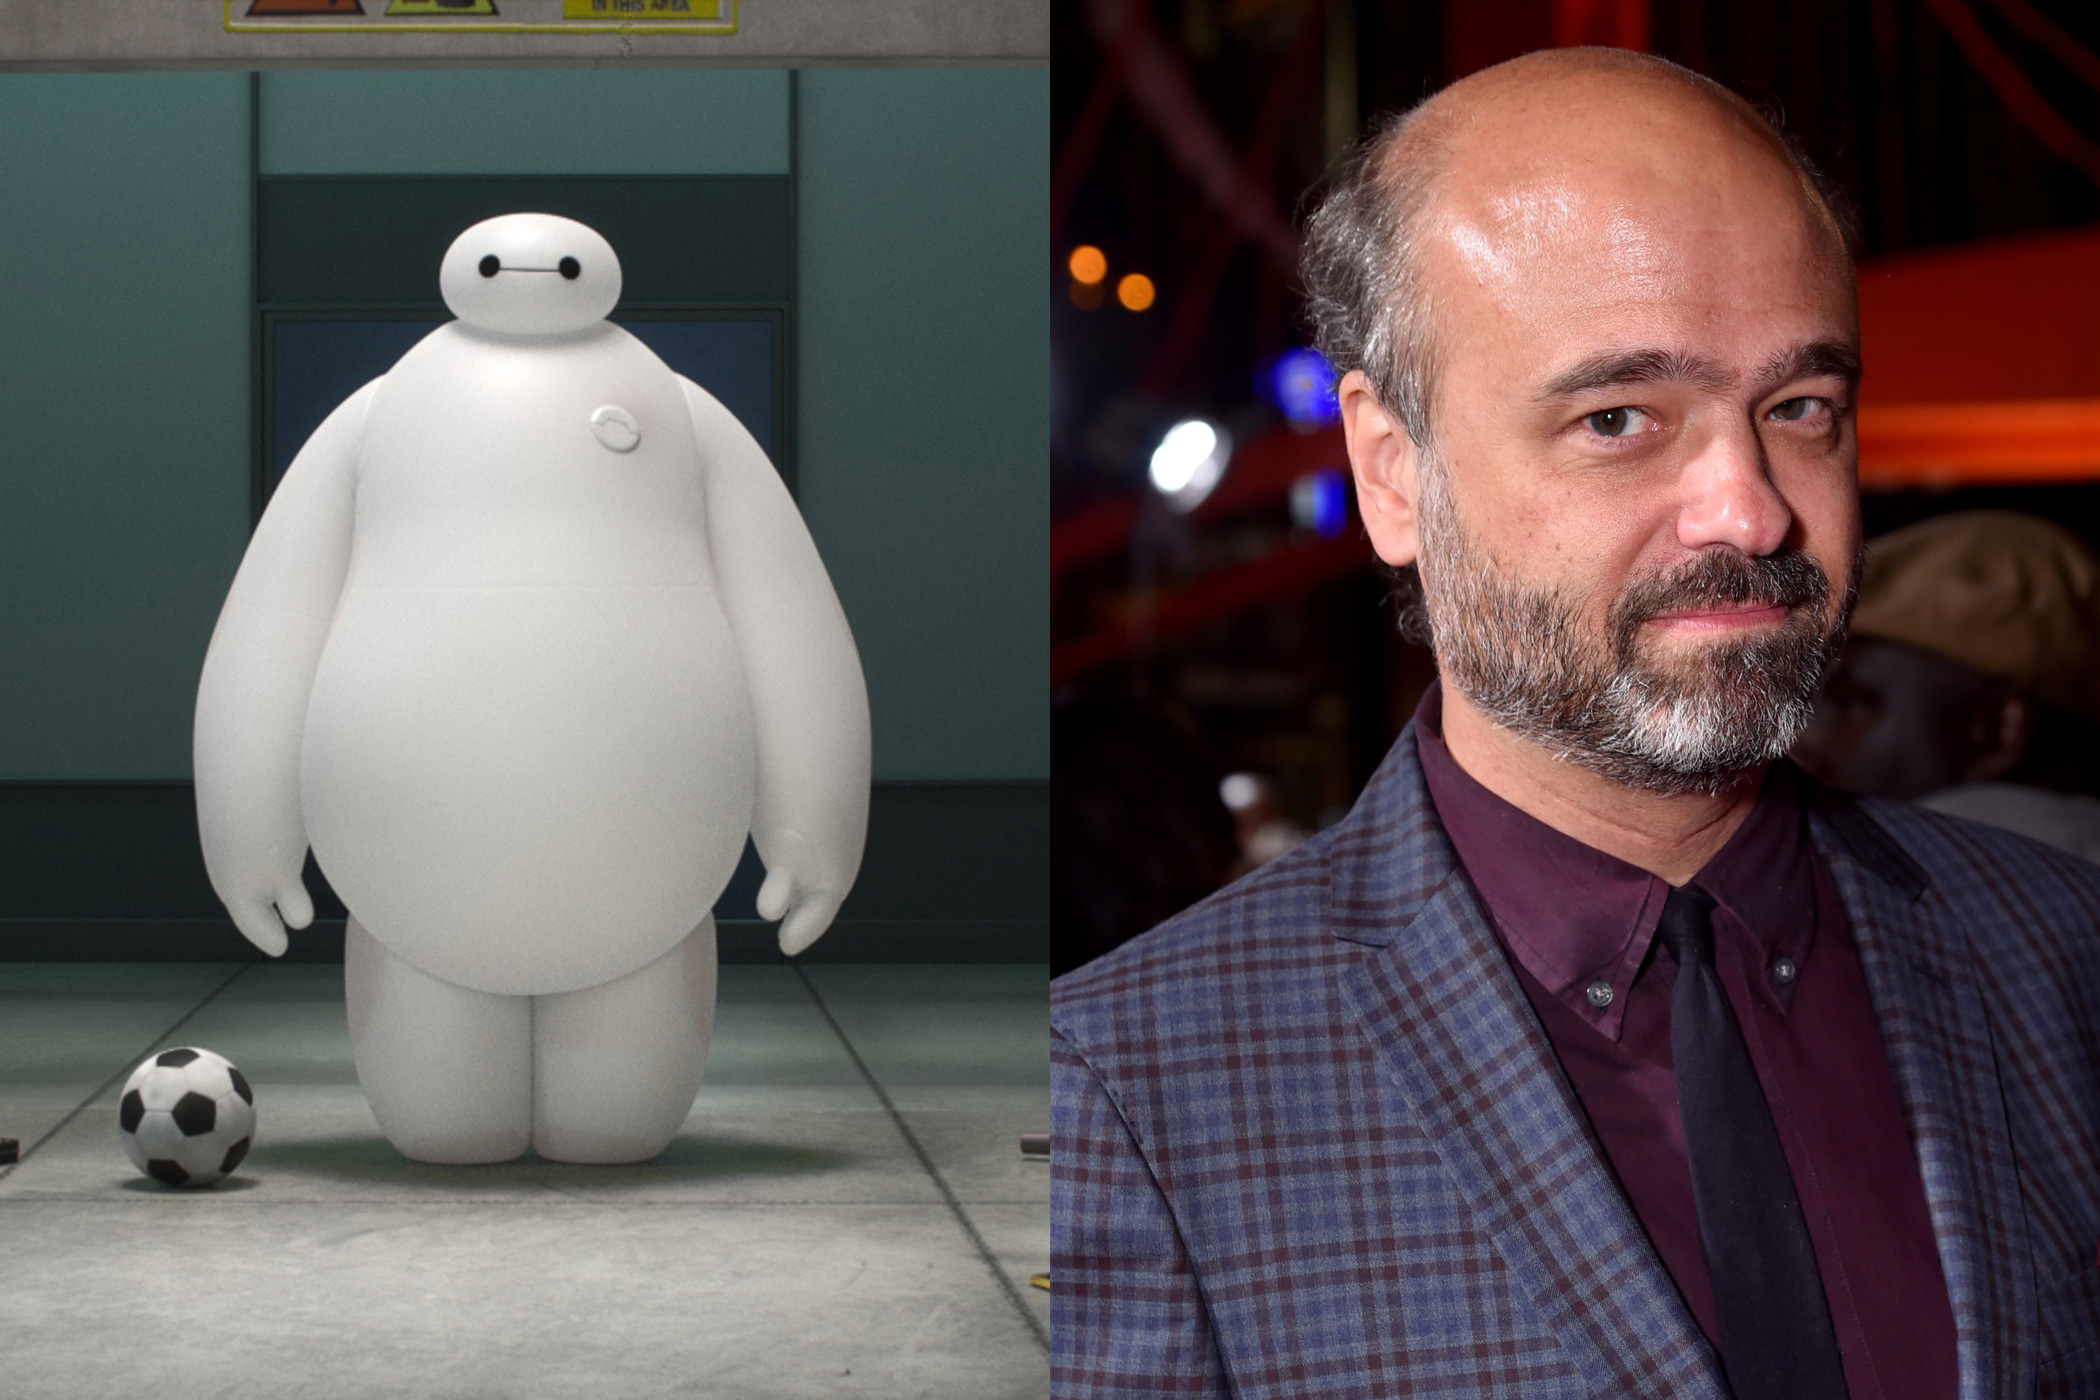 <i>30 Rock Star</i> Scott Adsit lends his voice to the lovable robot Baymax in Disney's <i>Big Hero 6</i>